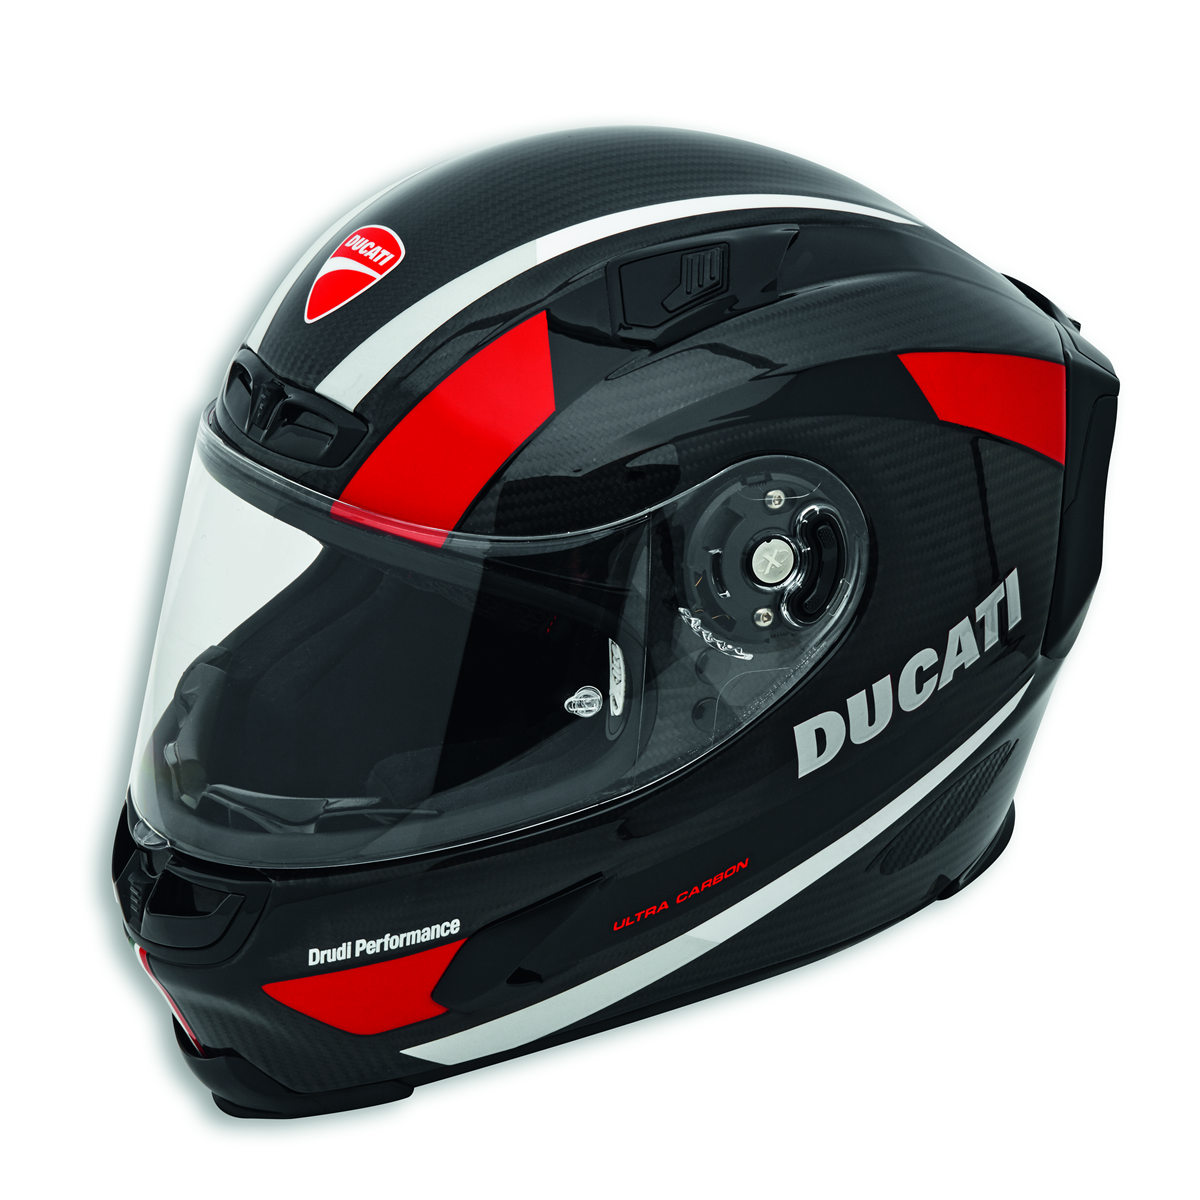 Speed Evo - Full-face helmet 981047062